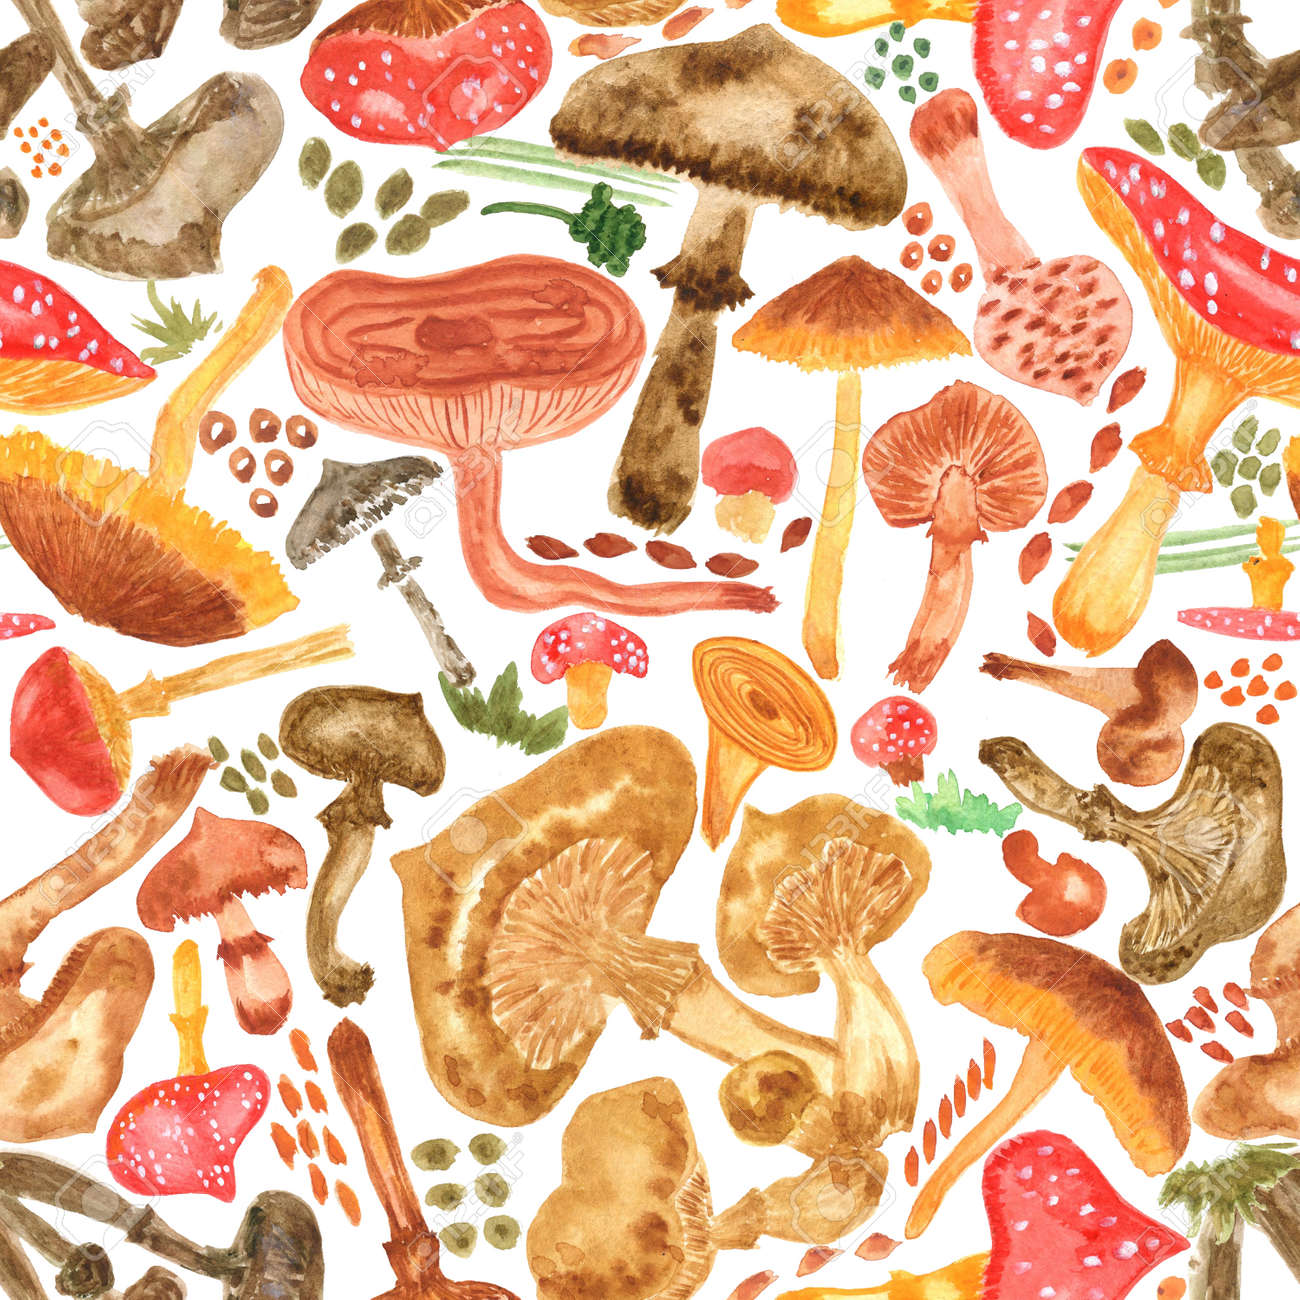 Seamless watercolor background with mushrooms. Pattern for creating fabrics, wallpapers, gift wrapping paper, invitations, textile, scrapbooking. Isolated on white background. - 165694566